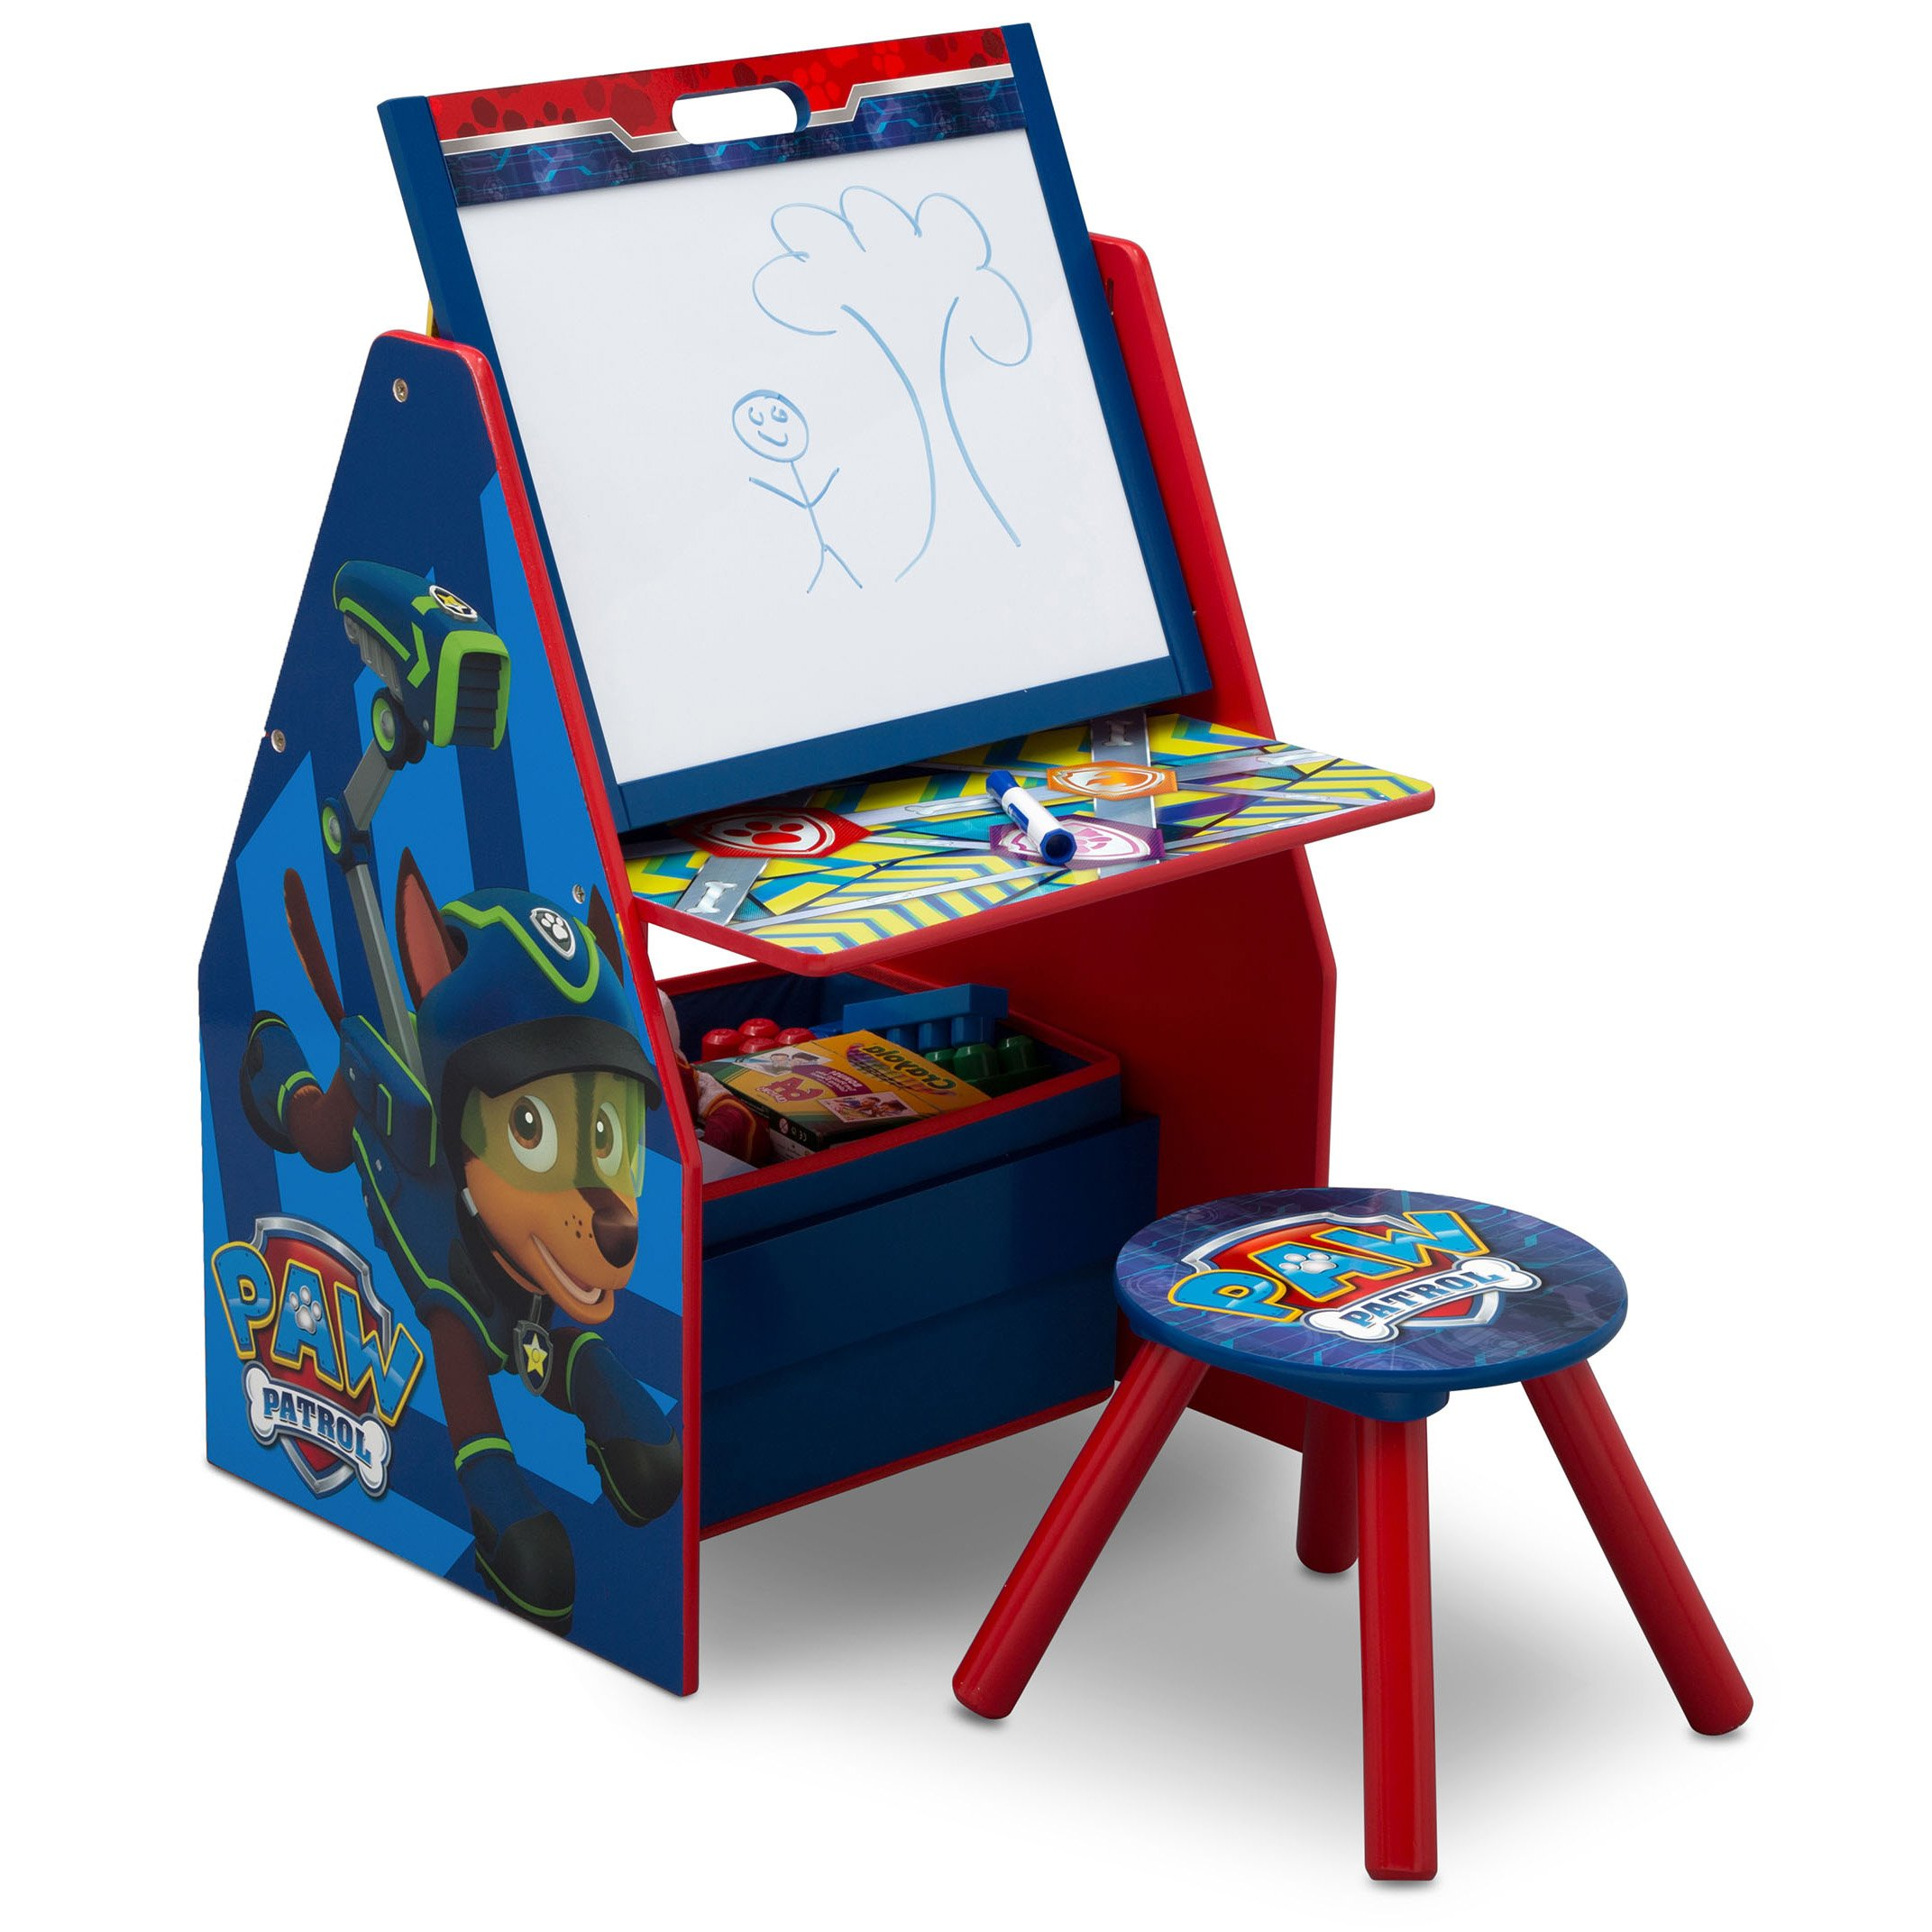 Delta Children Easel and Play Station, Nick Jr. PAW Patrol by Delta Children